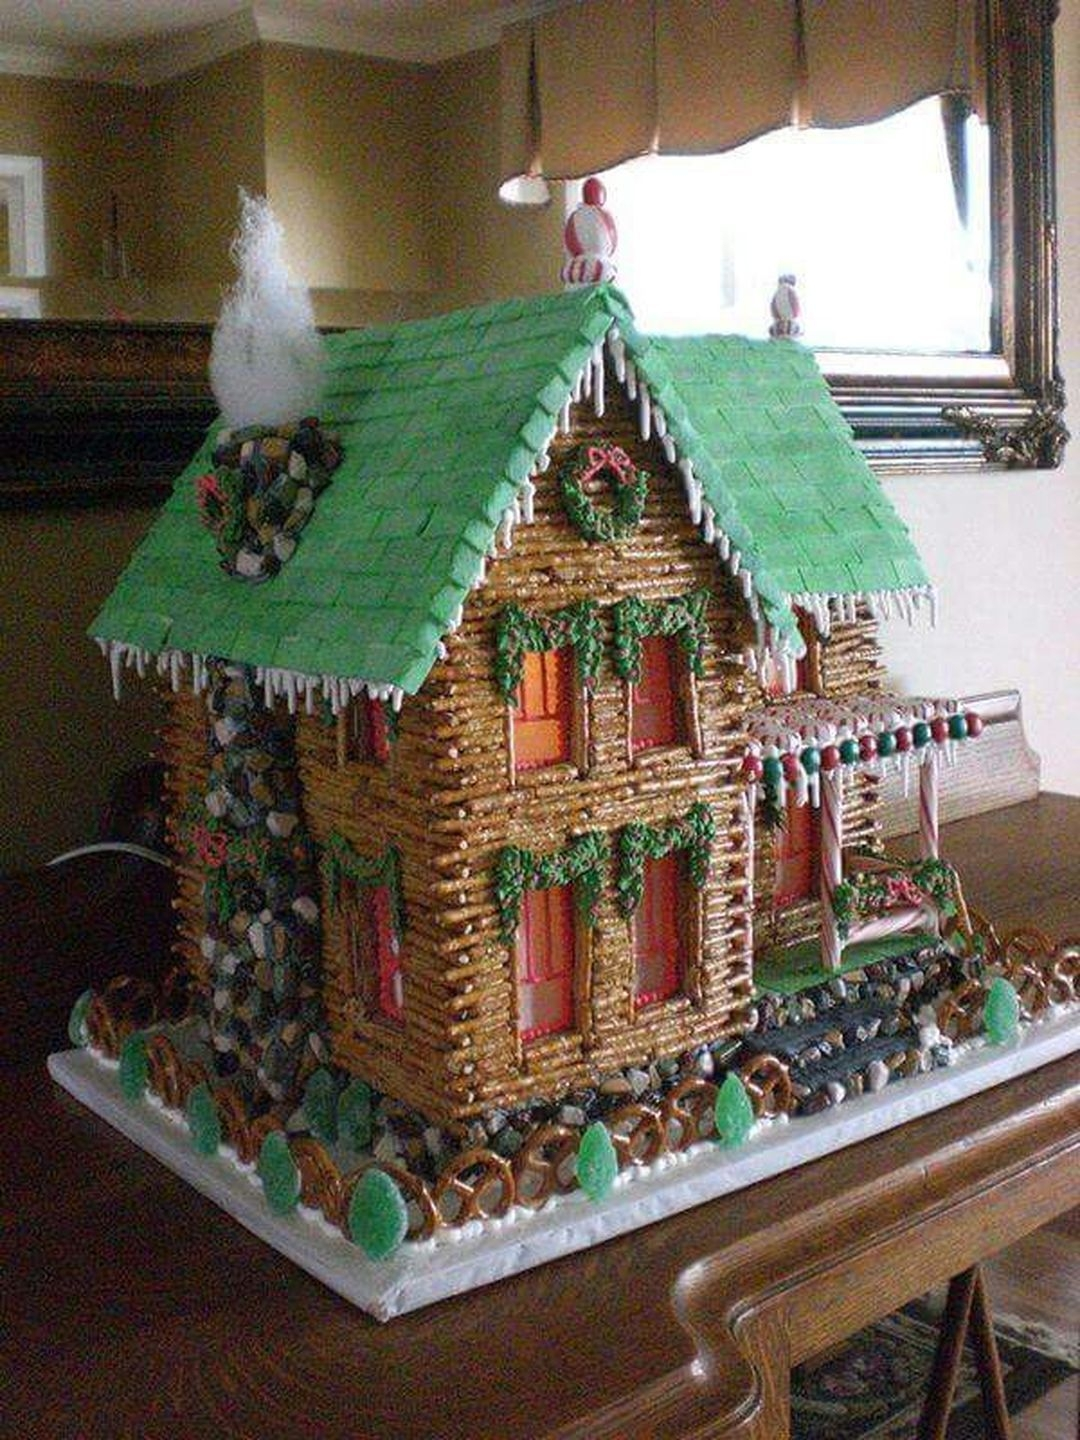 Fantastic Diy Gingerbread House Ideas For Your Décor To Try Asap 43